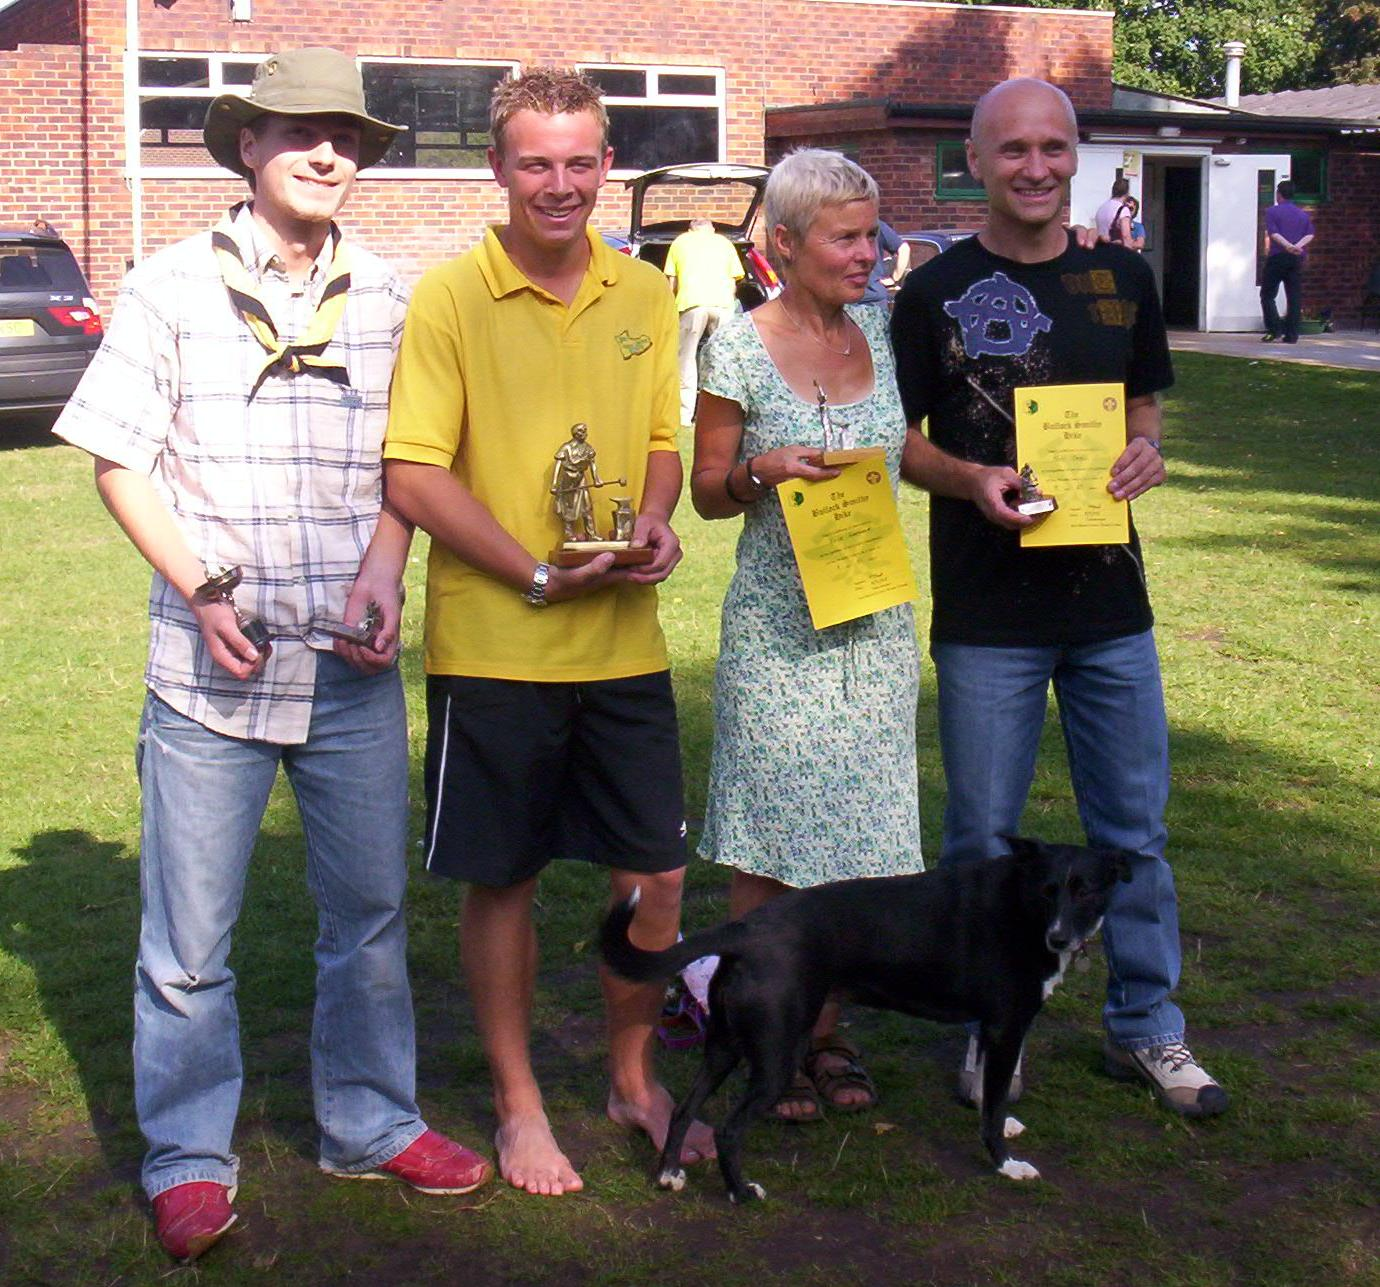 Winners 2005-  Alexander Walker, Simon Timmins, Julie Gardner, Tony Okell